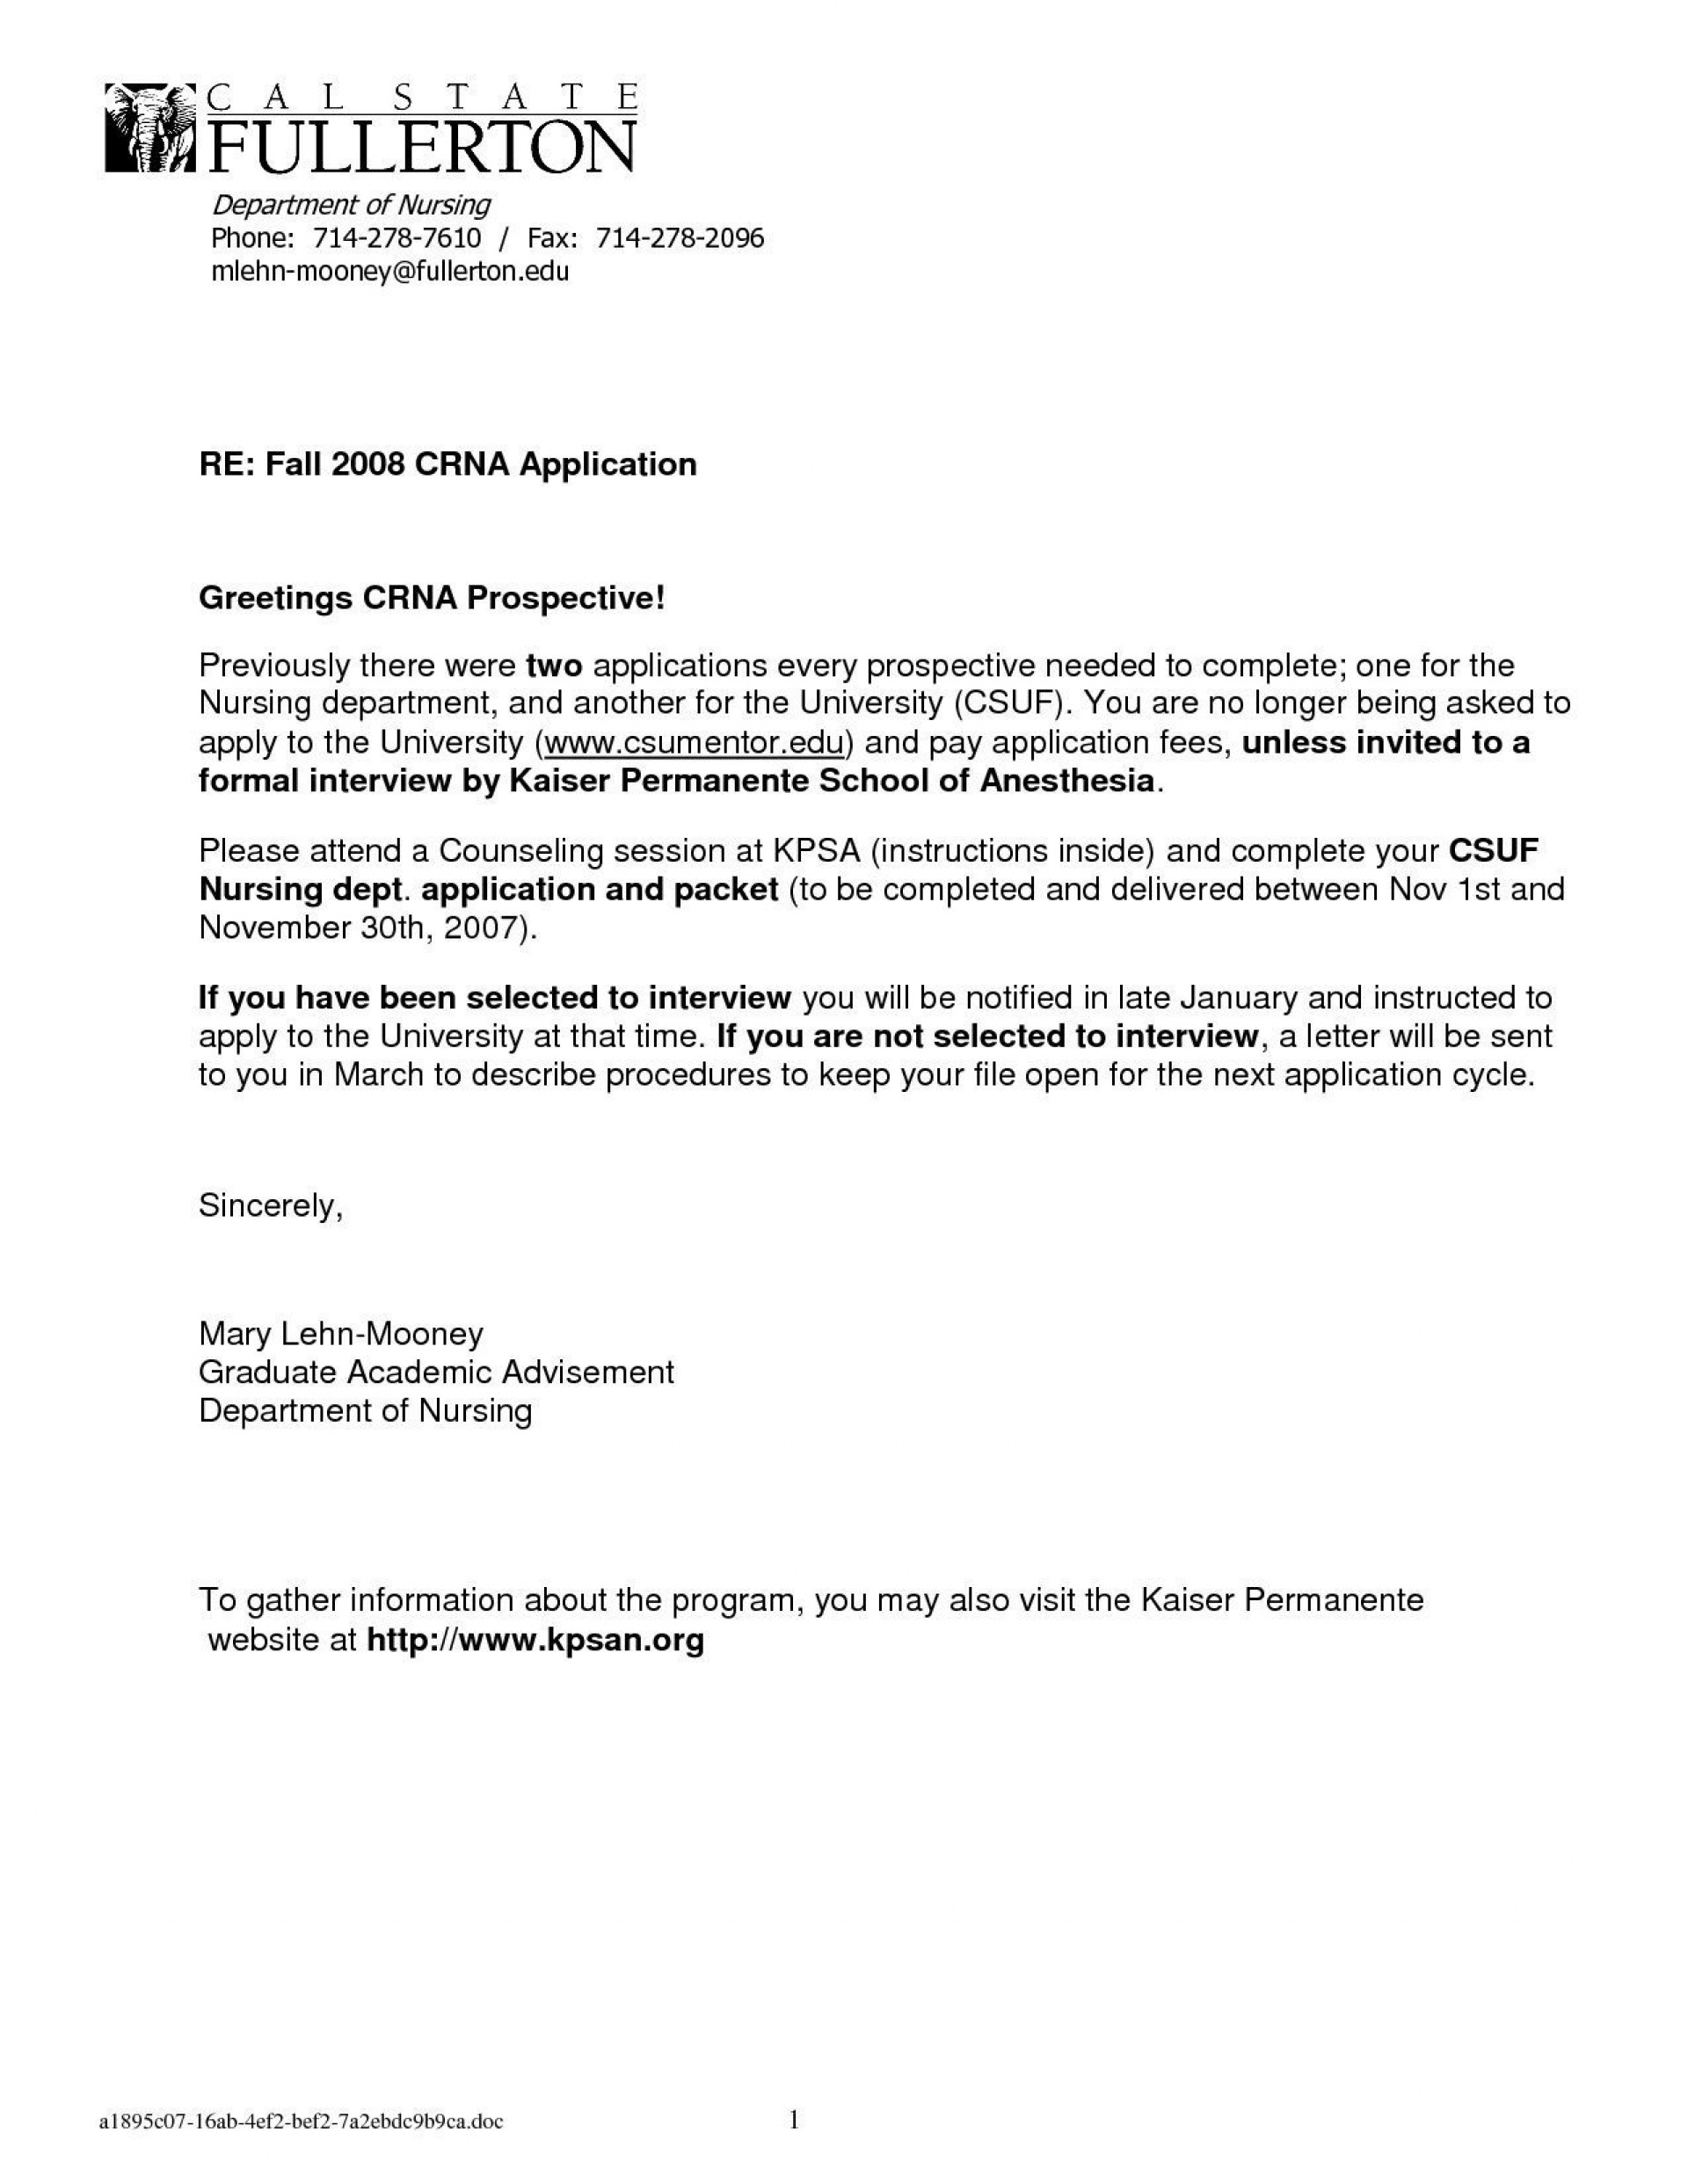 006 Awesome Letter Of Recommendation Template High Resolution  Word Sample For College Admission Student Doc1920